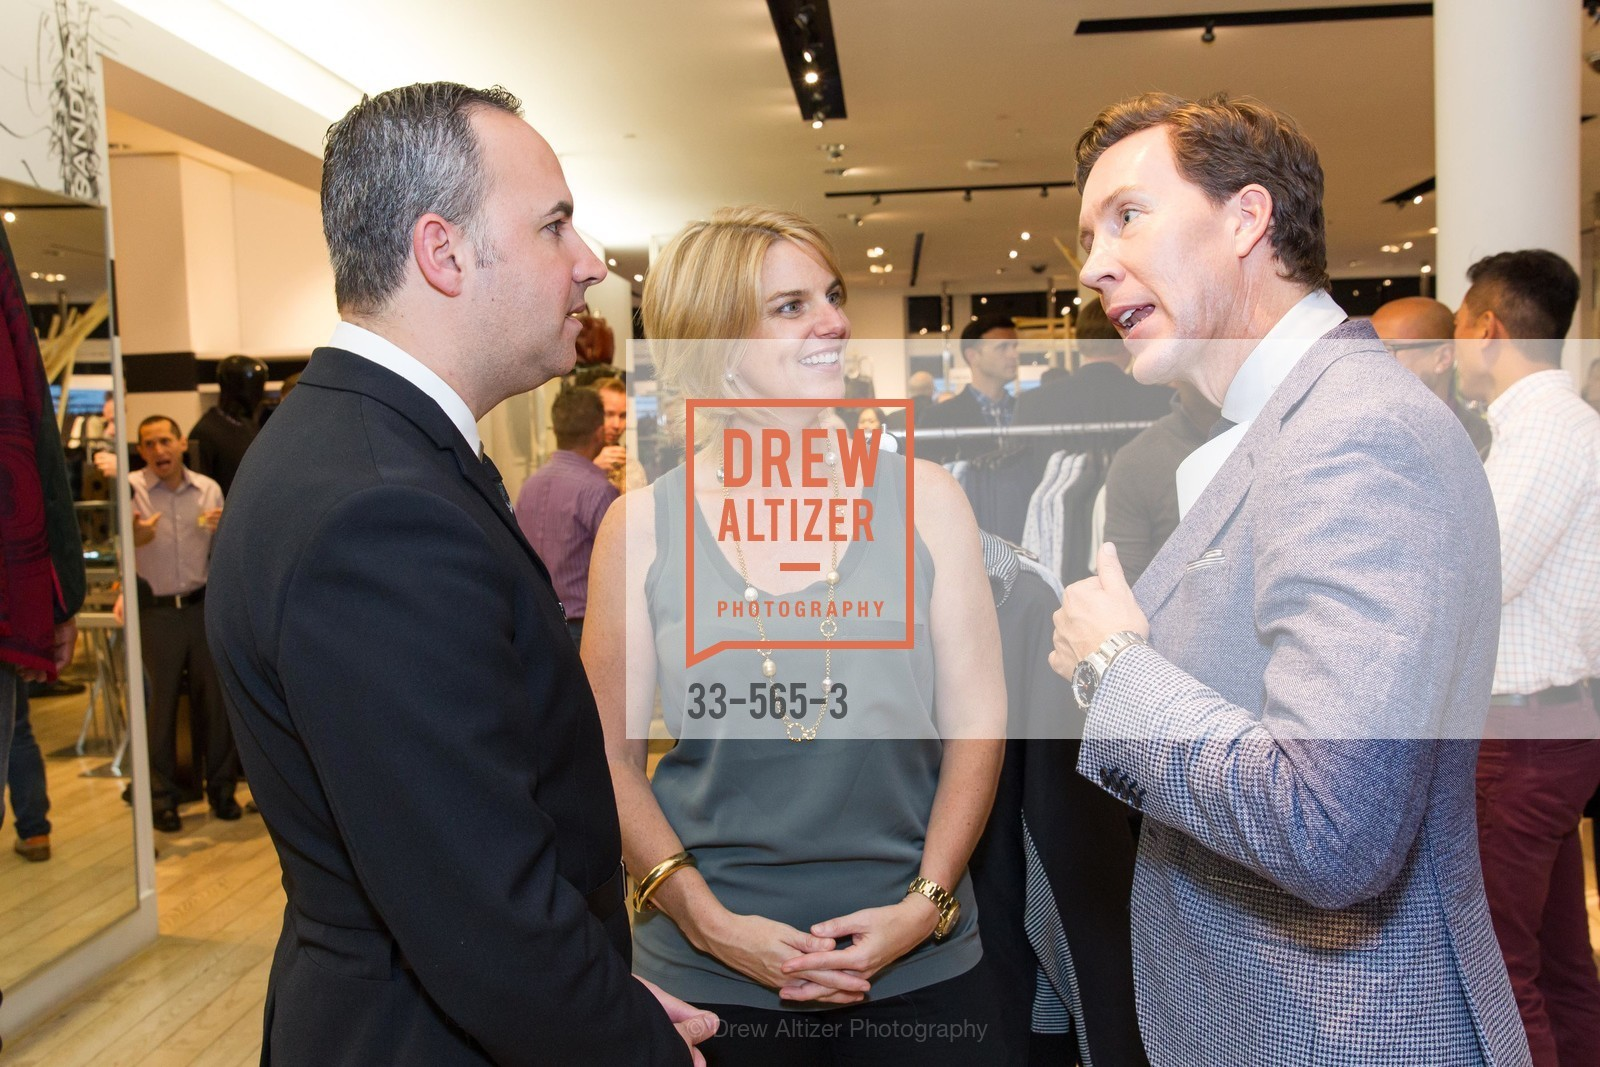 Robert Arnold-Kraft, Sarah Kate Ellis, Eric Jennings, GLAAD GALA Kick-Off Party Hosted by SAKS FIFTH AVENUE, Saks Fifth Avenue. 384 Post Street, September 12th, 2014,Drew Altizer, Drew Altizer Photography, full-service agency, private events, San Francisco photographer, photographer california